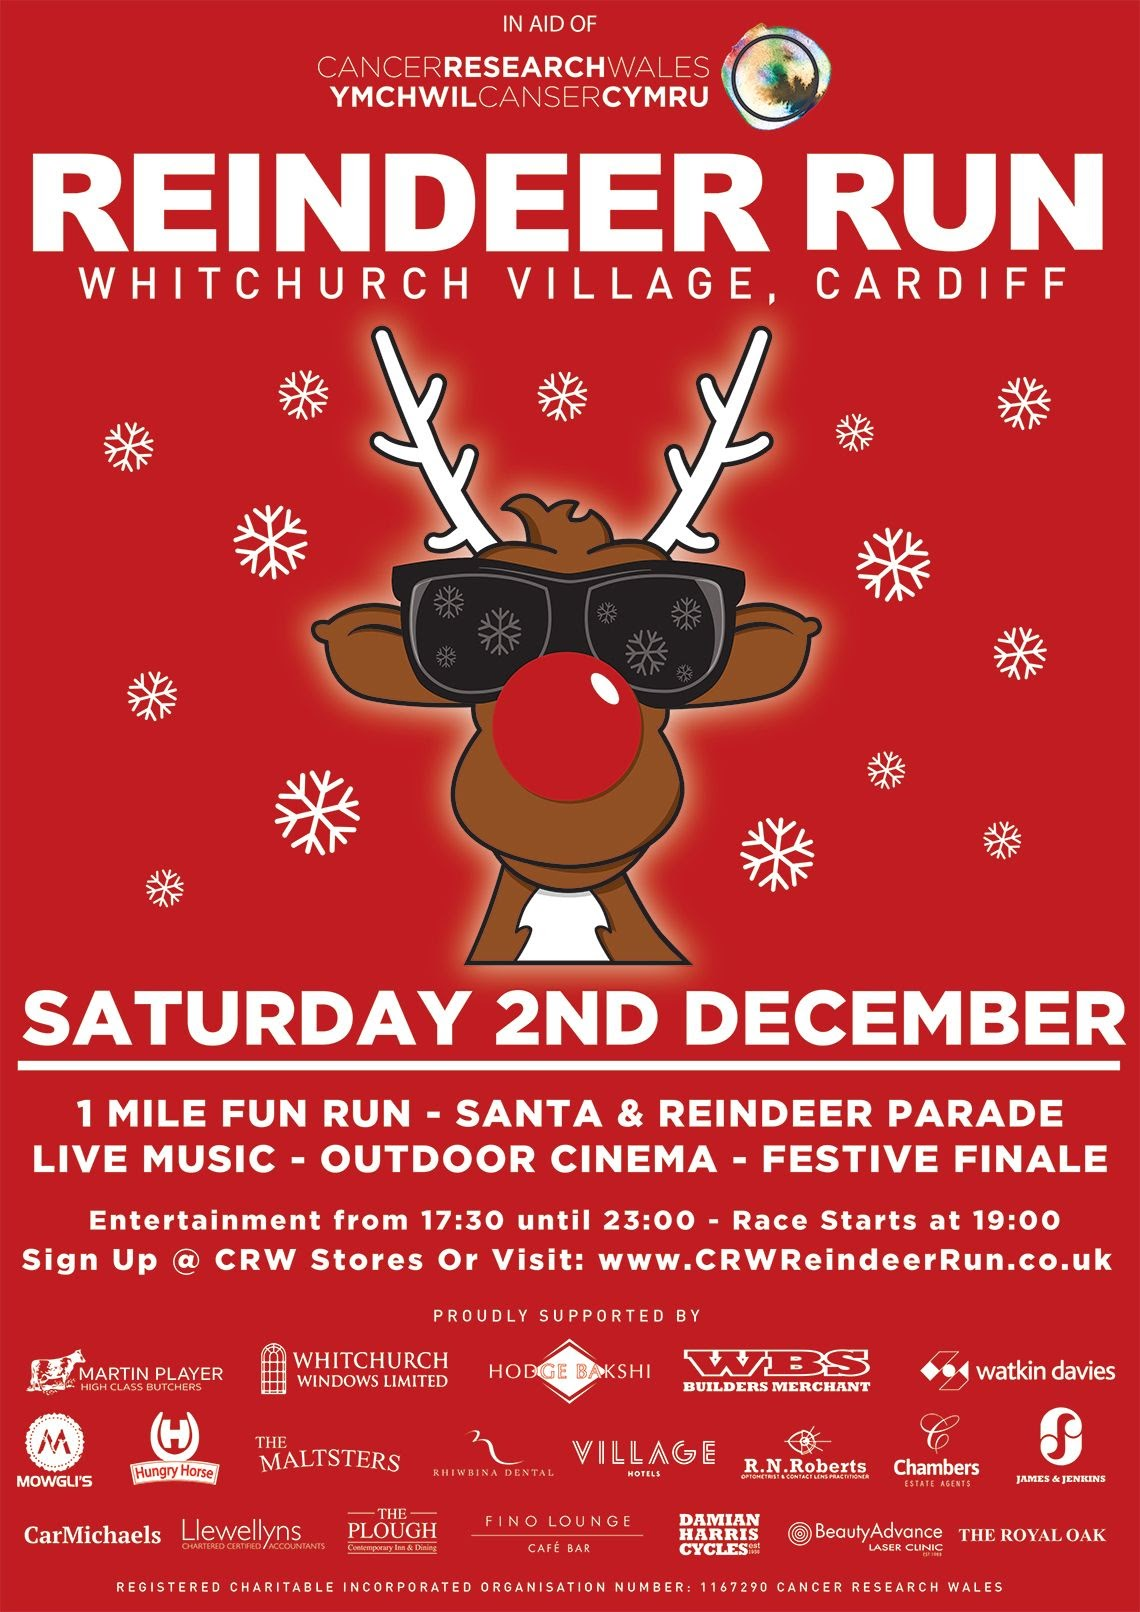 Cancer Research Wales Reindeer Run 2017 Poster